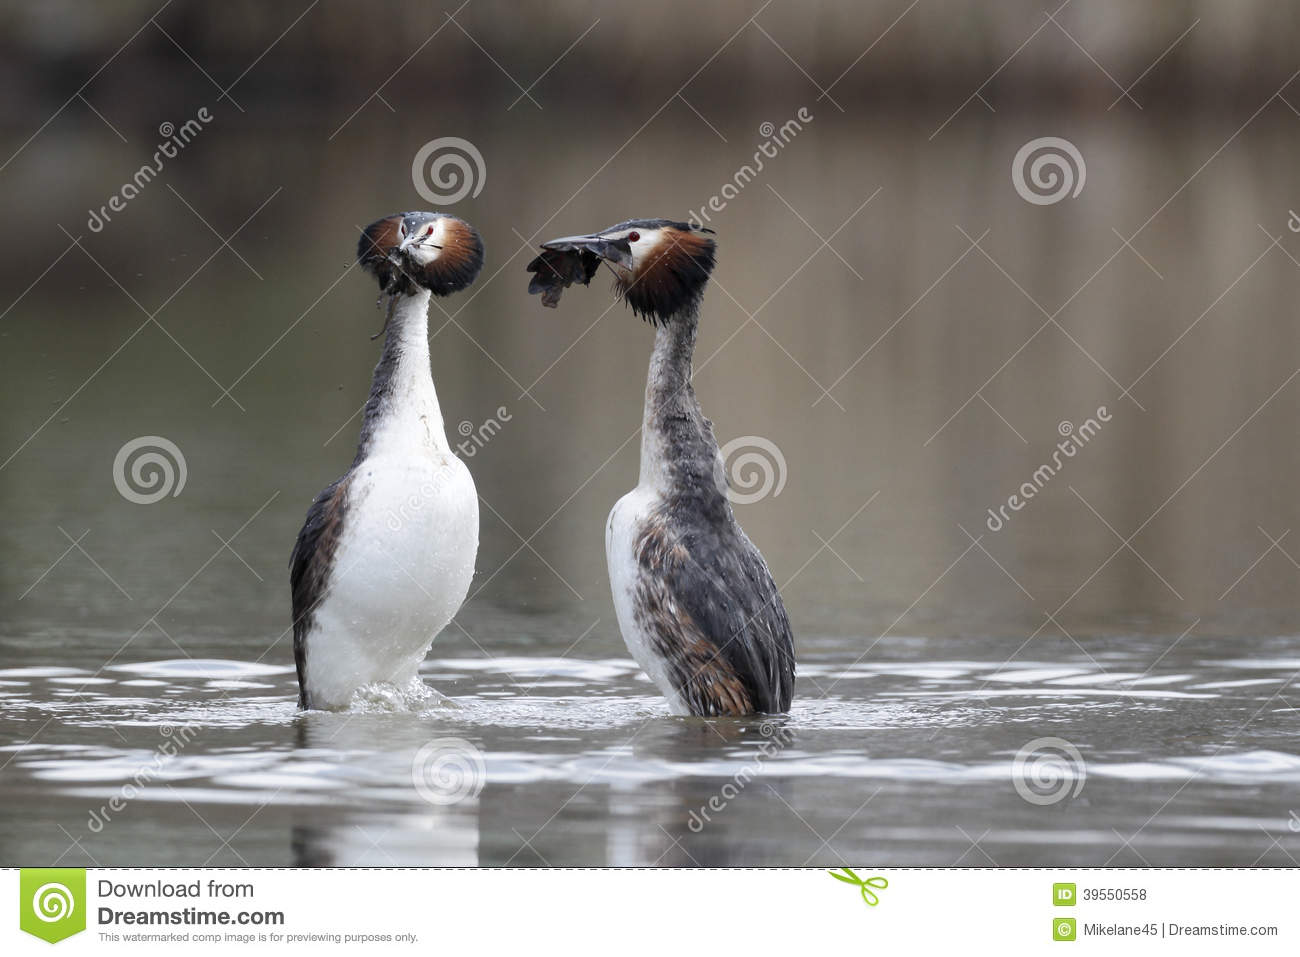 Great-crested grebe, Podiceps cristatus